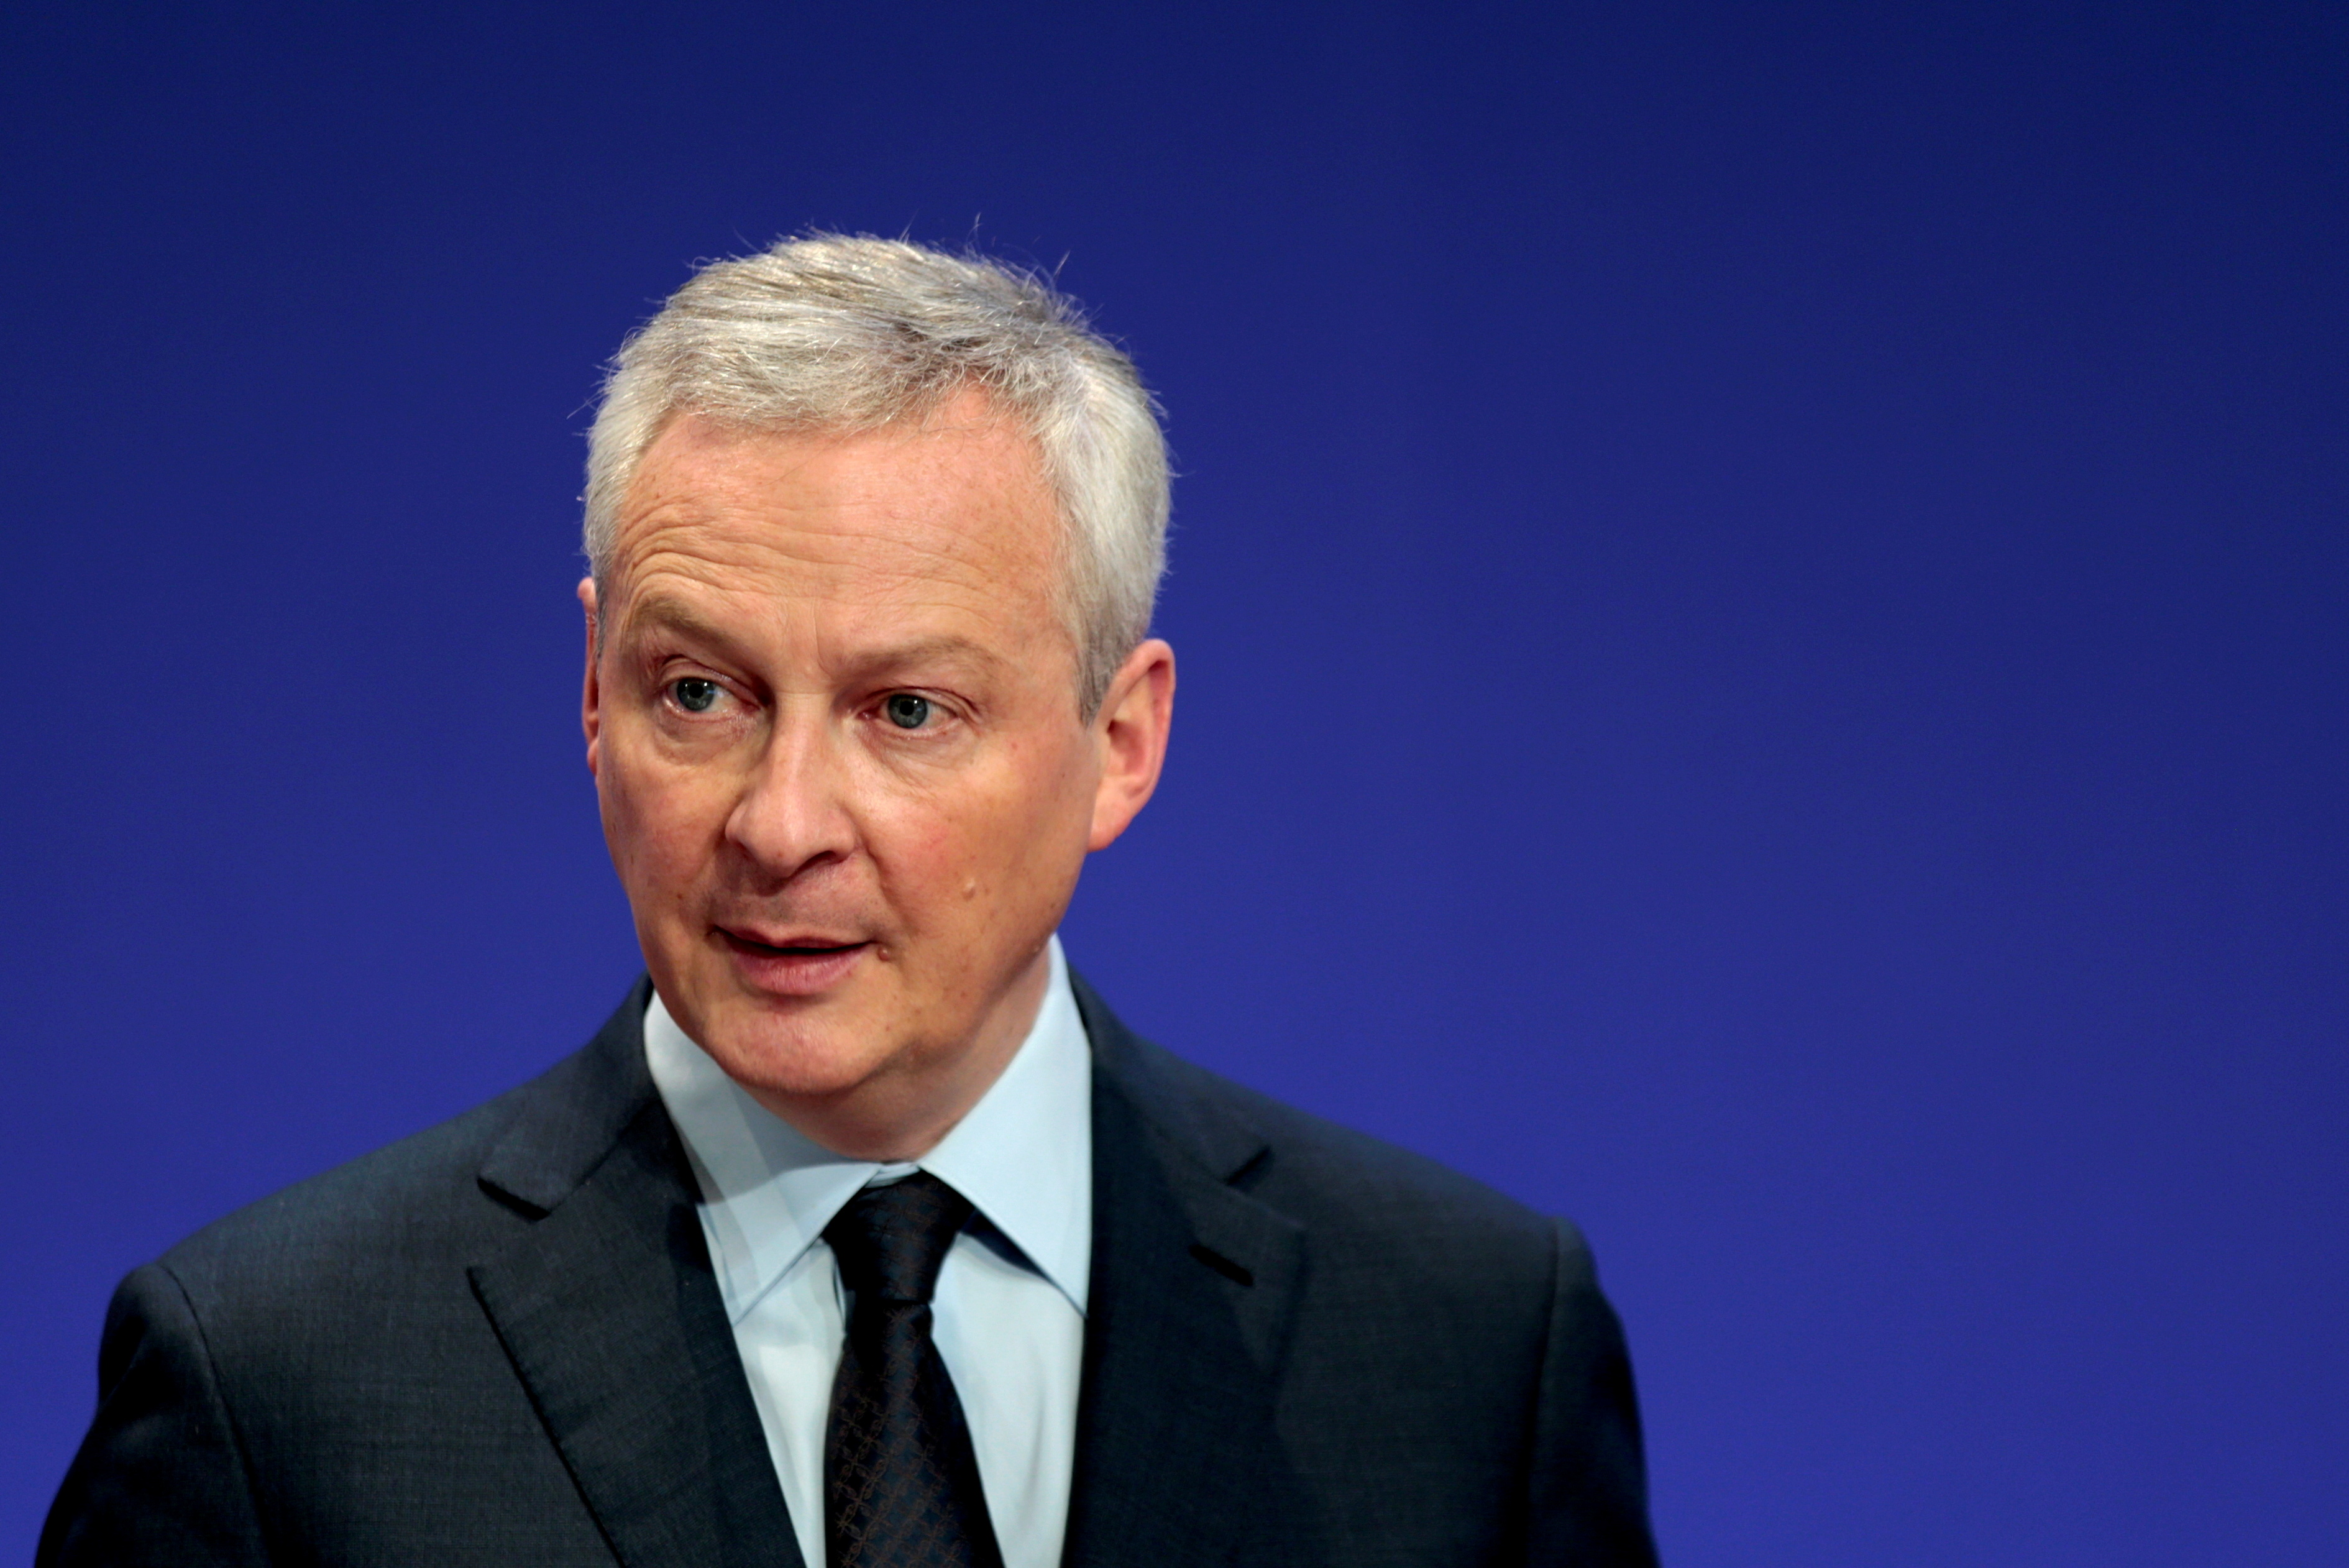 French Economy and Finance Minister Bruno Le Maire attends a news conference in Paris, France, April 8, 2021. REUTERS/Sarah Meyssonnier